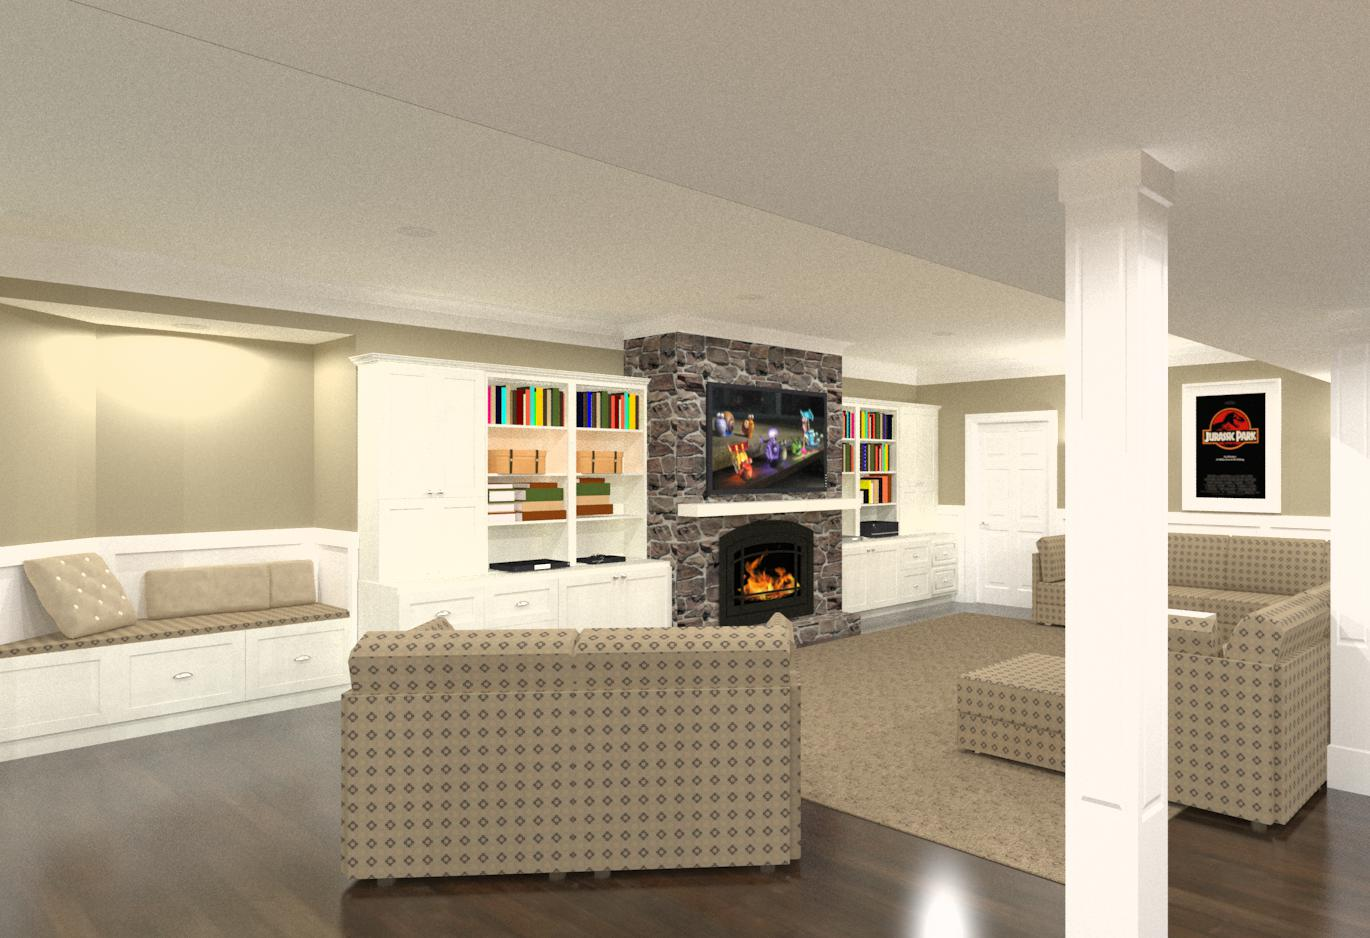 Designs Remodeling: Basement Finishing And Remodeling Designs In Morris County